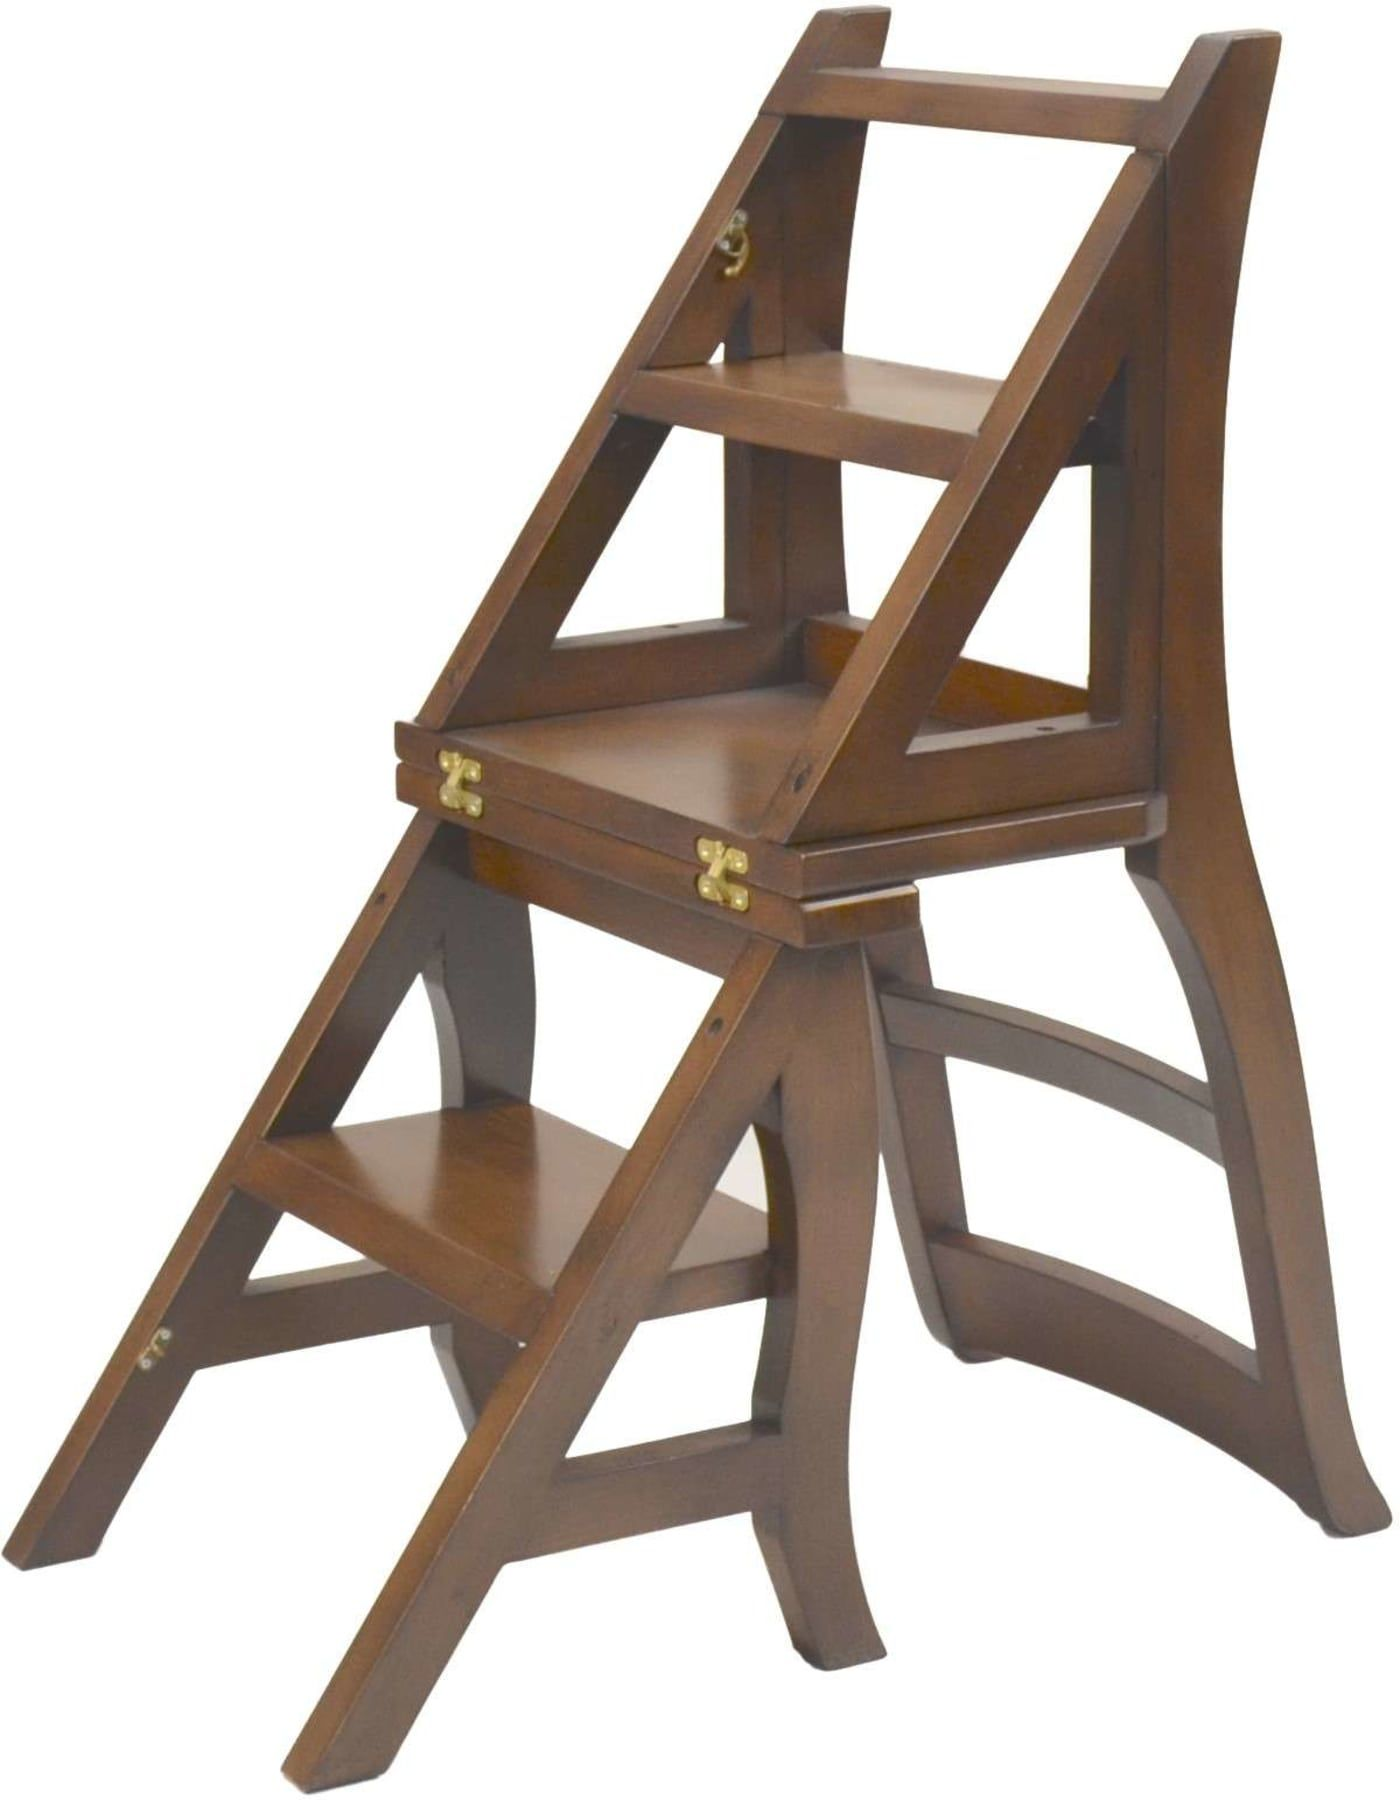 Carolina Chair Table Chestnut Folding Library Ladder Chair 1617 Nc Goedekers Com Ladder Chair Chair Wood Chair